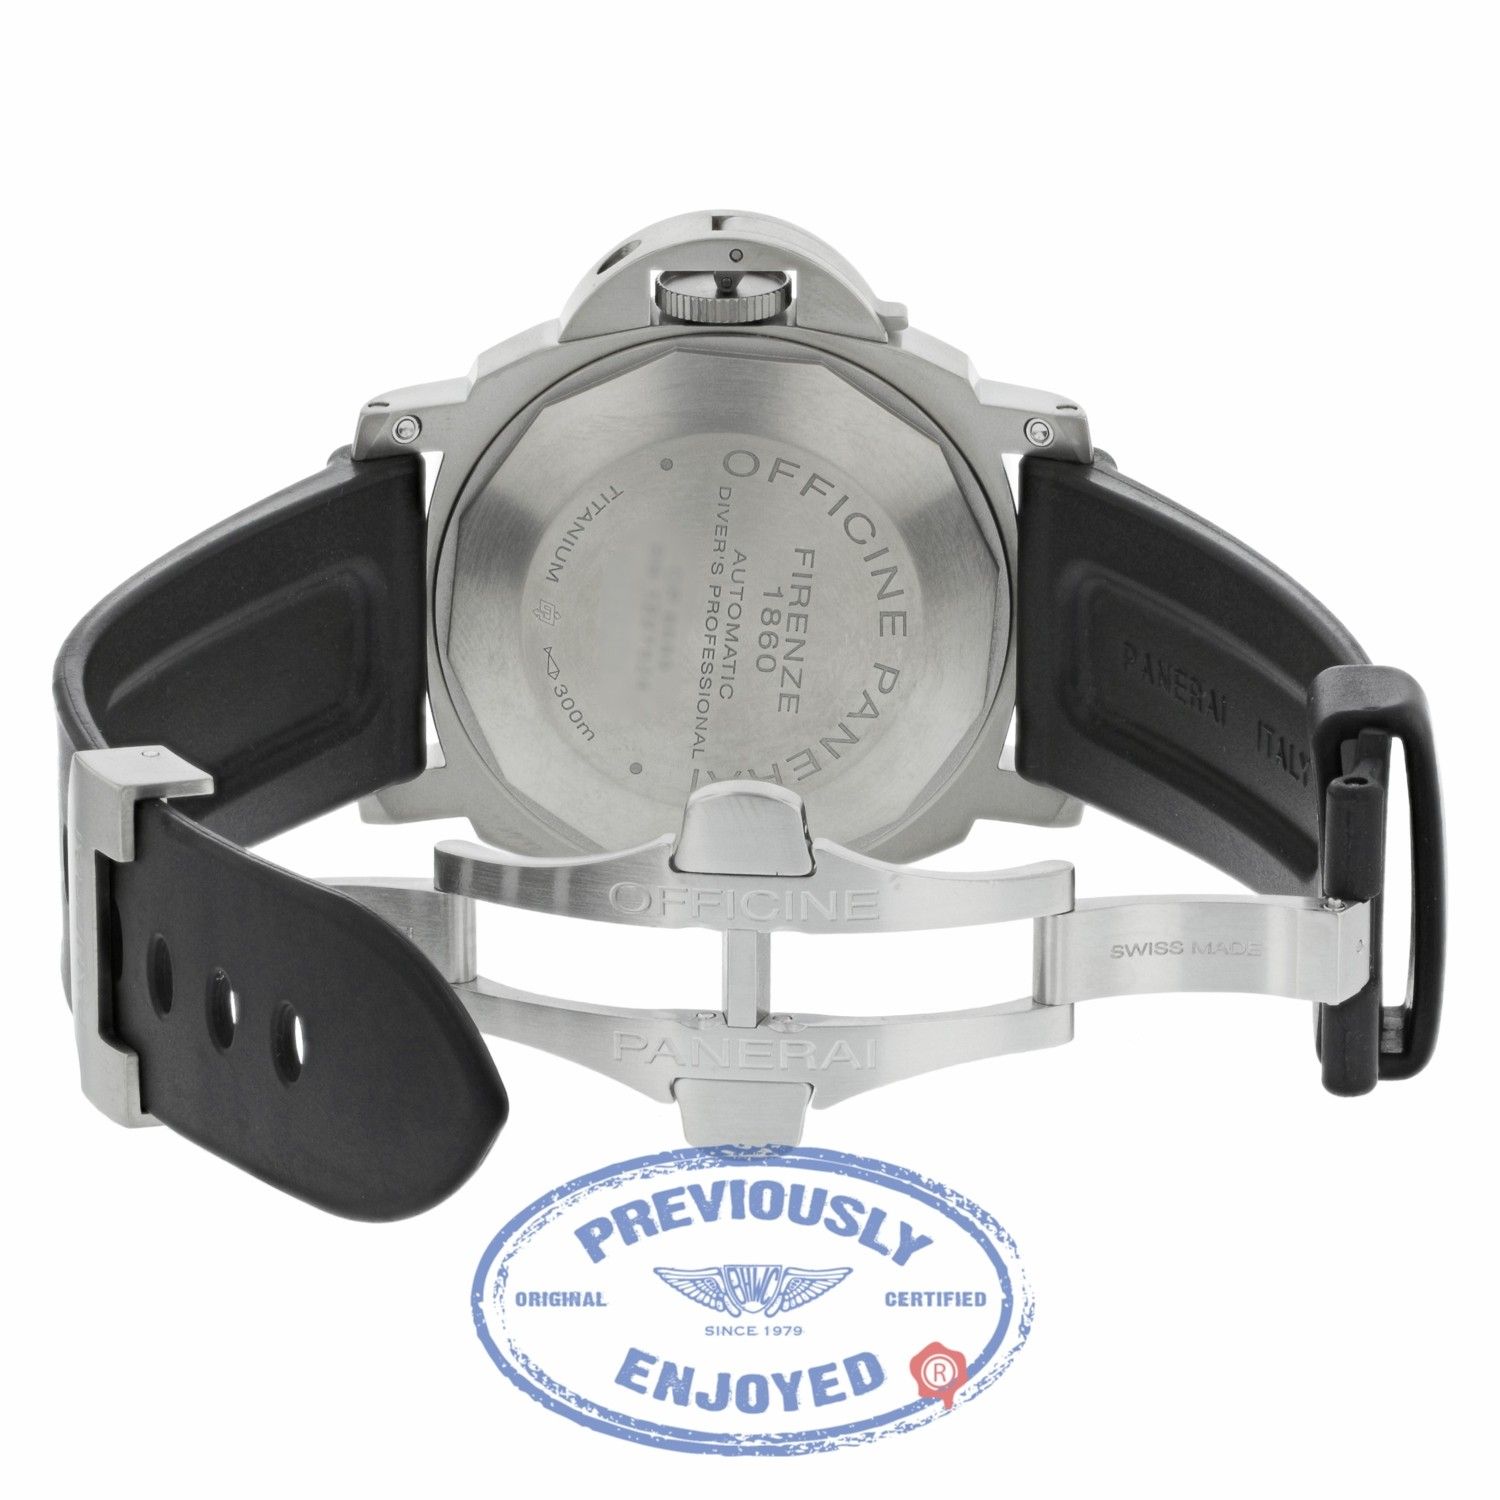 06e7272f7d7 Panerai Luminor Submersible Black Dial Rubber Strap PAM00025 2HQ6VY -  Beverly Hills Watch Company